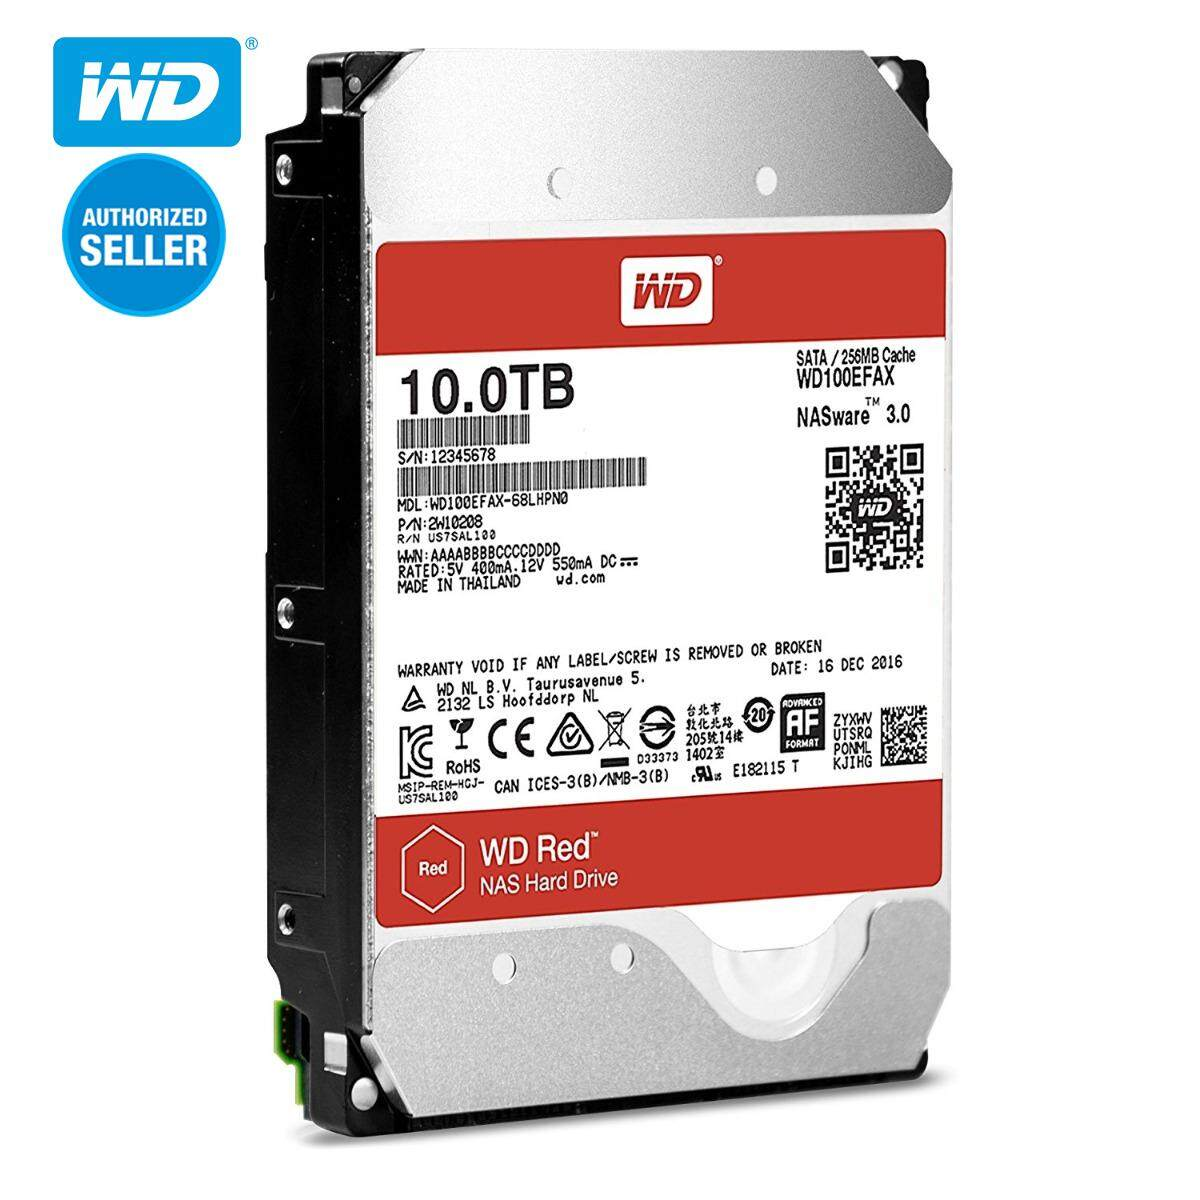 Western Digital Caviar Blue 1TB Review WD10EALX StorageReview Source · WD Caviar Red 10TB 3 5 Hard Disk 5400RPM 256MB SATA 6